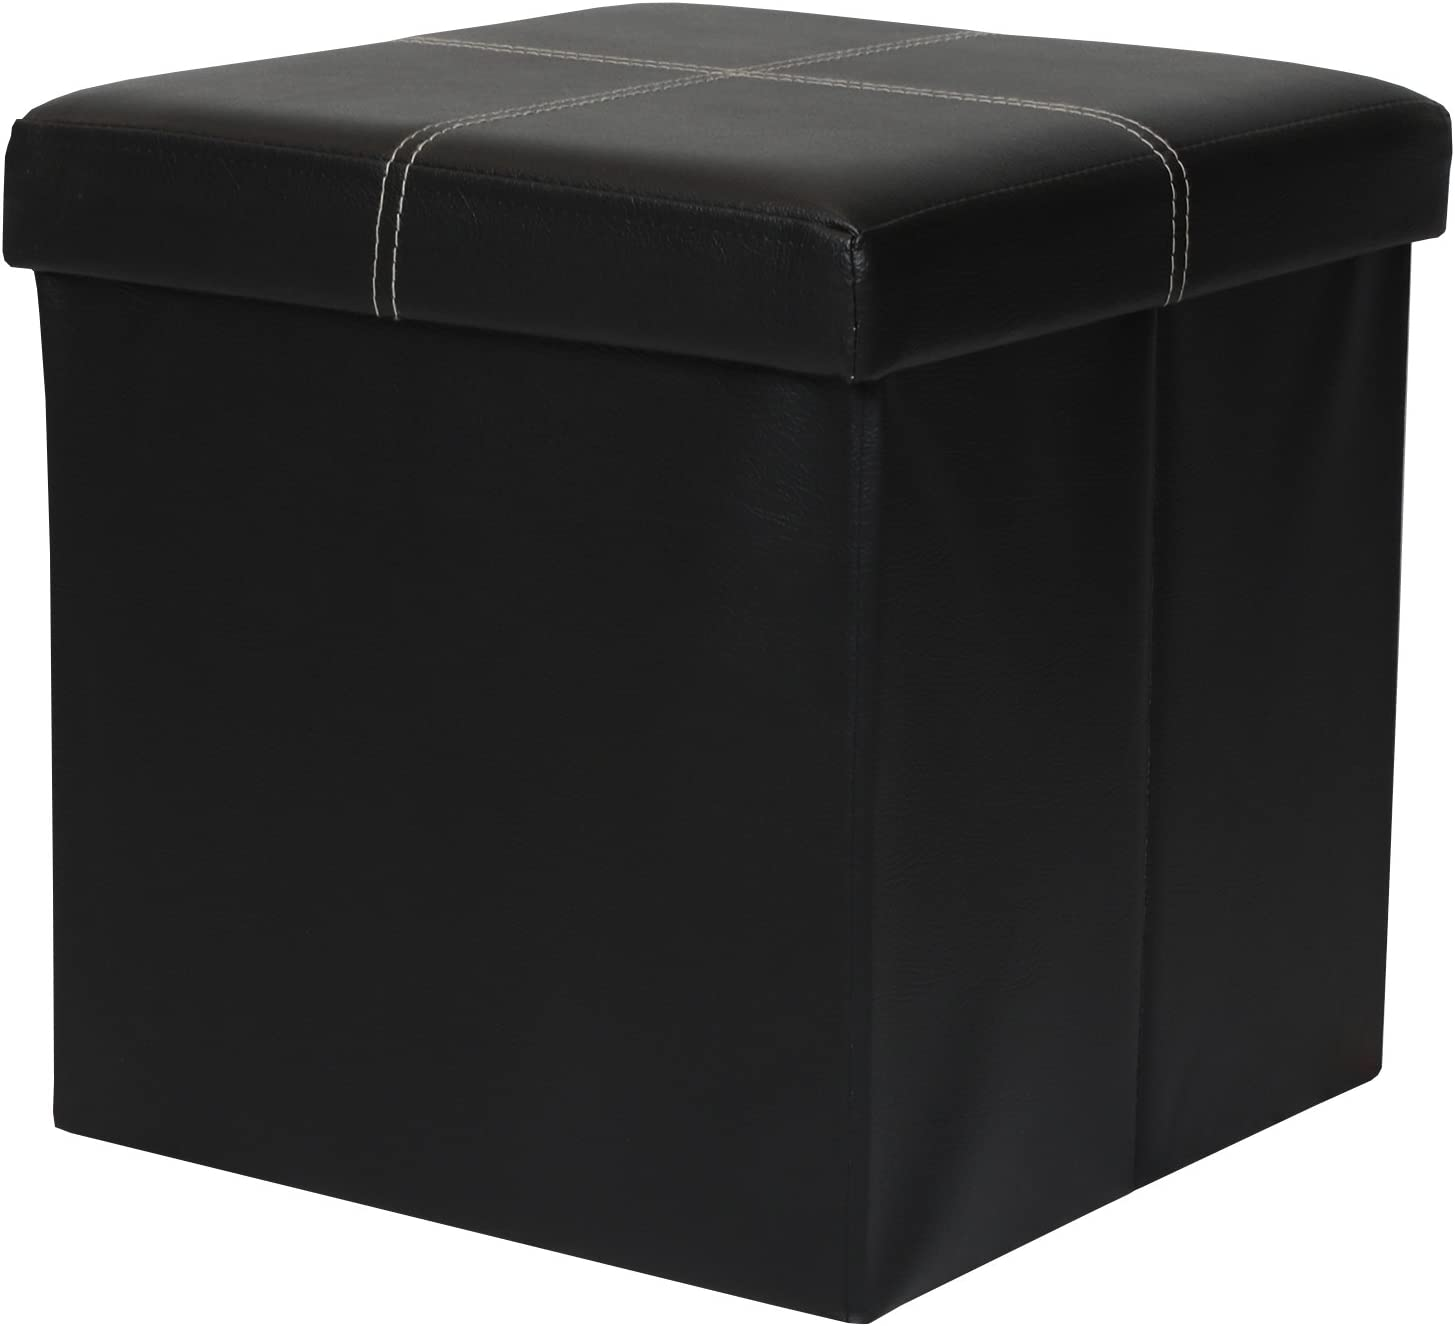 "Otto & Ben 15"" Storage Ottoman - Folding Toy Box Chest with Memory Foam Seat, Faux Leather Small Ottomans Bench Foot Rest Stool, Line Black"